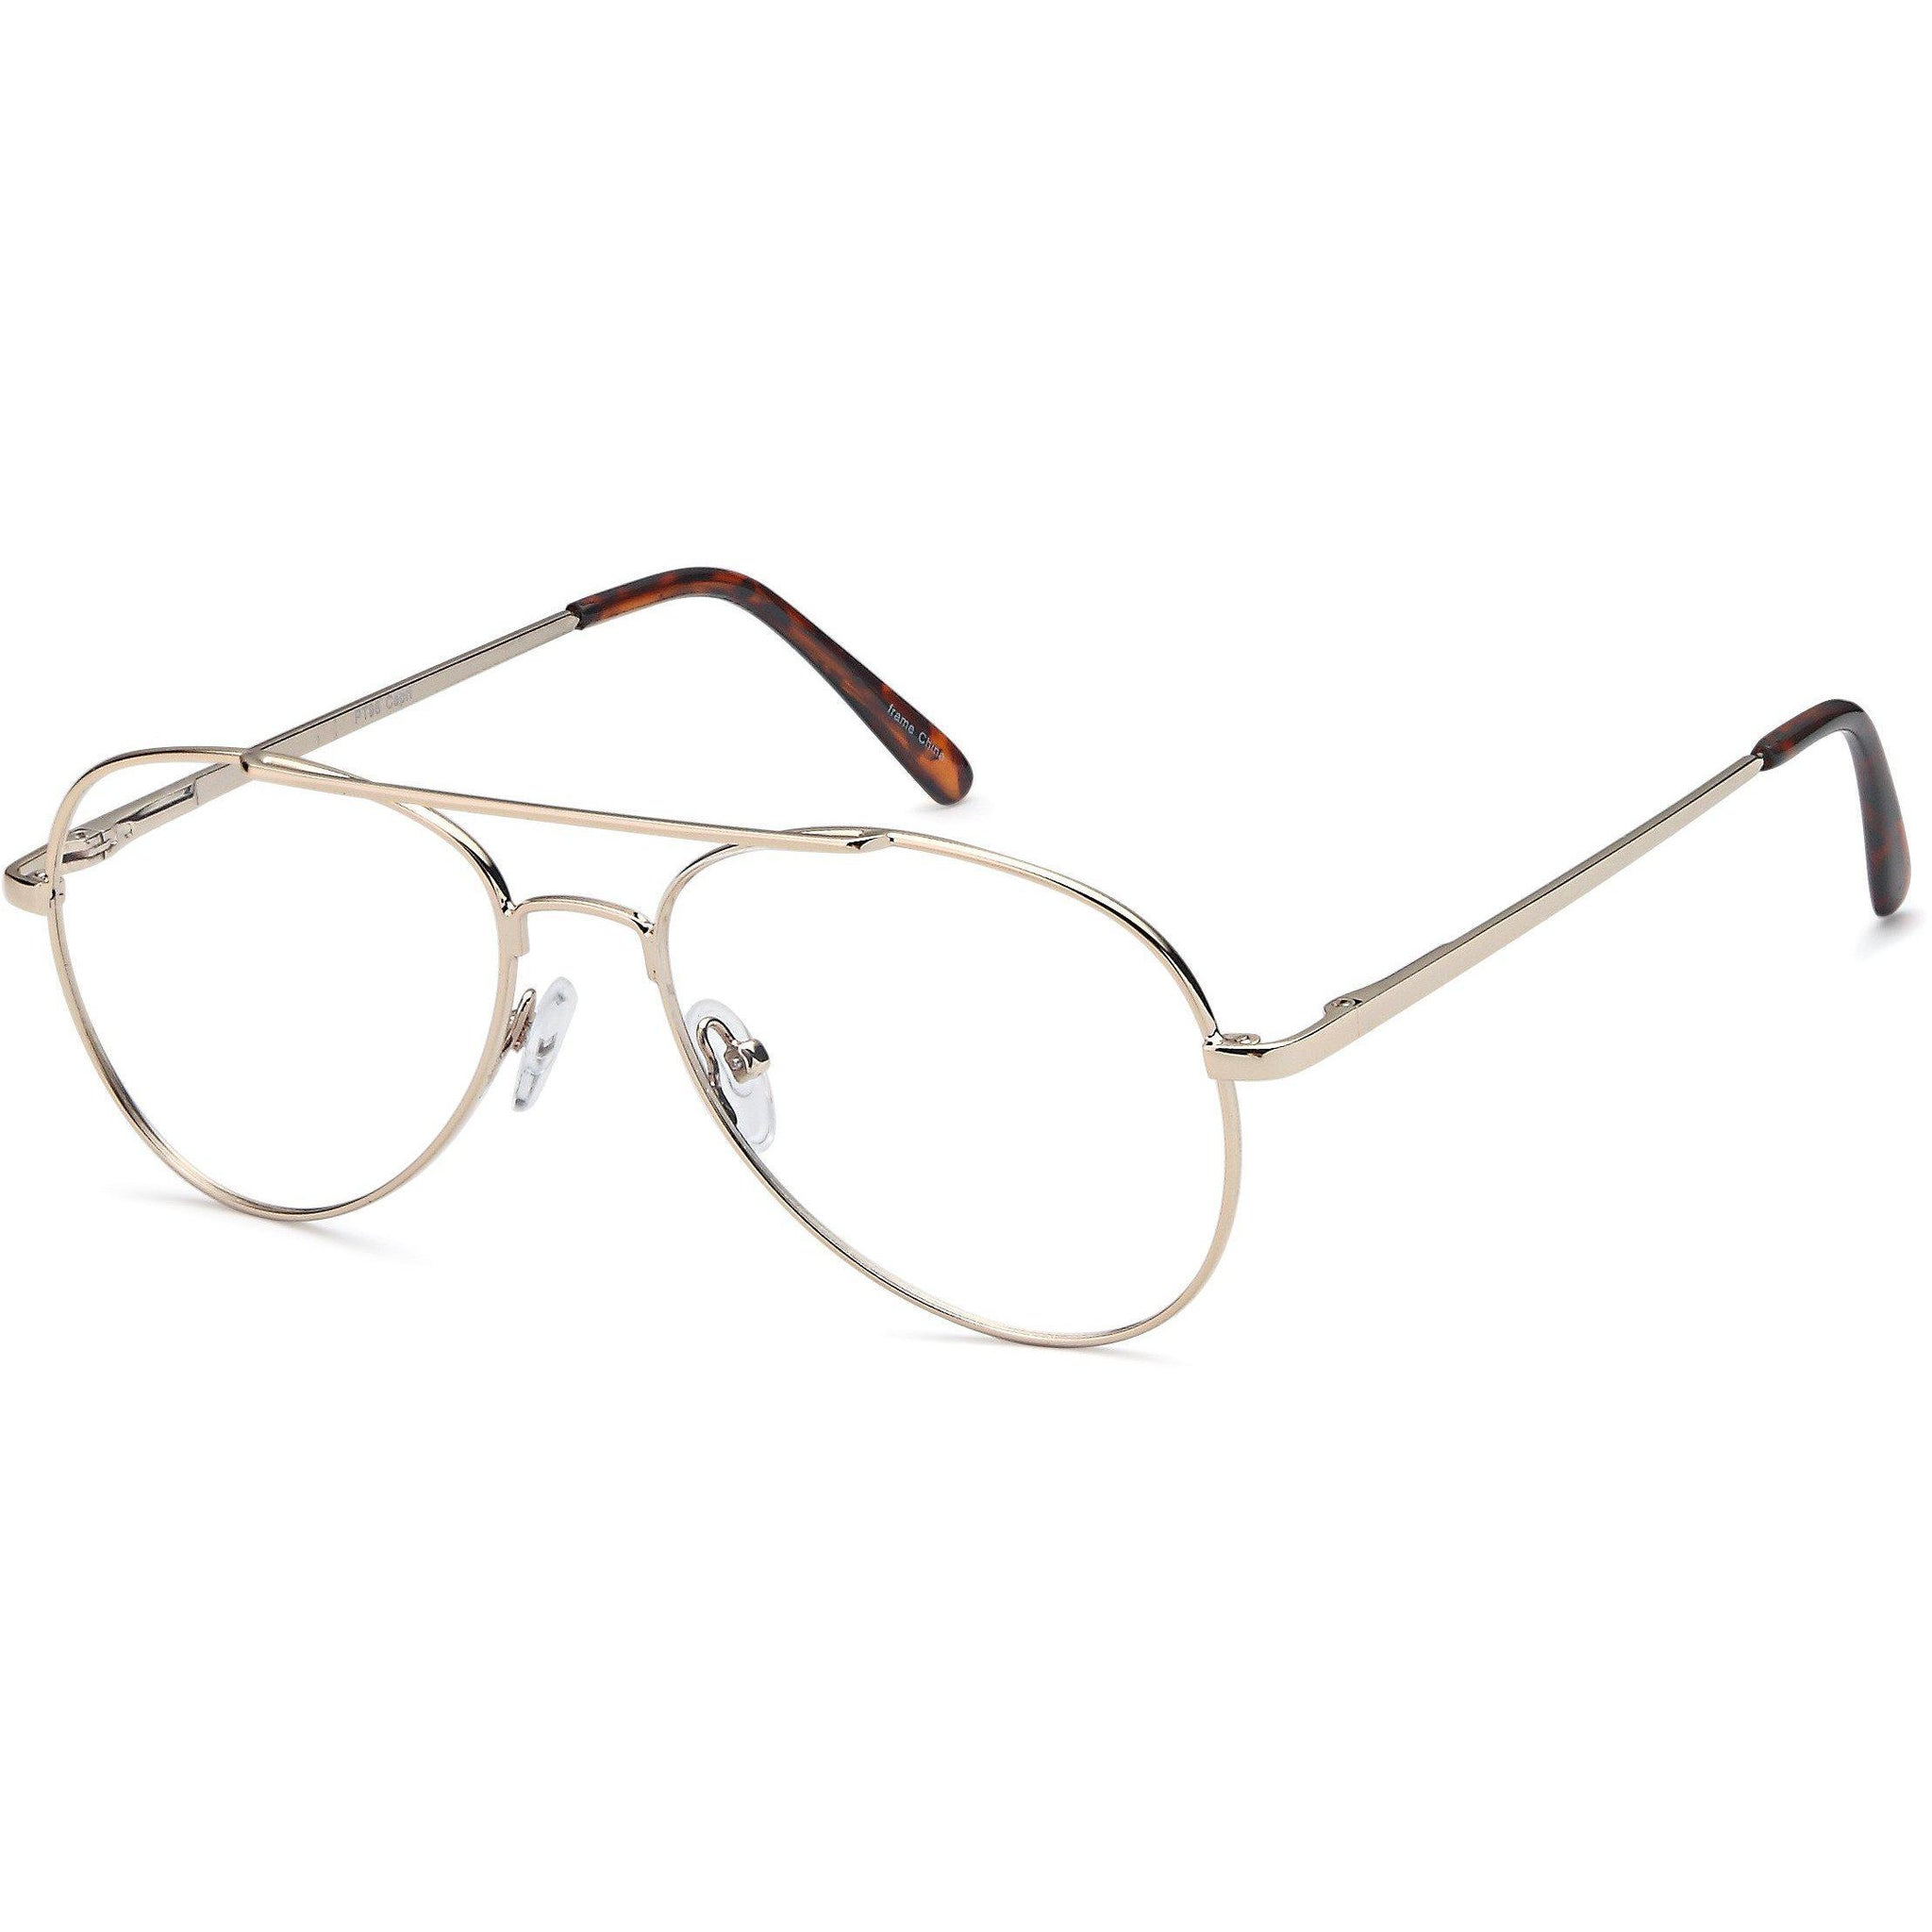 Appletree Prescription Glasses PT 98 Eyeglasses Frame